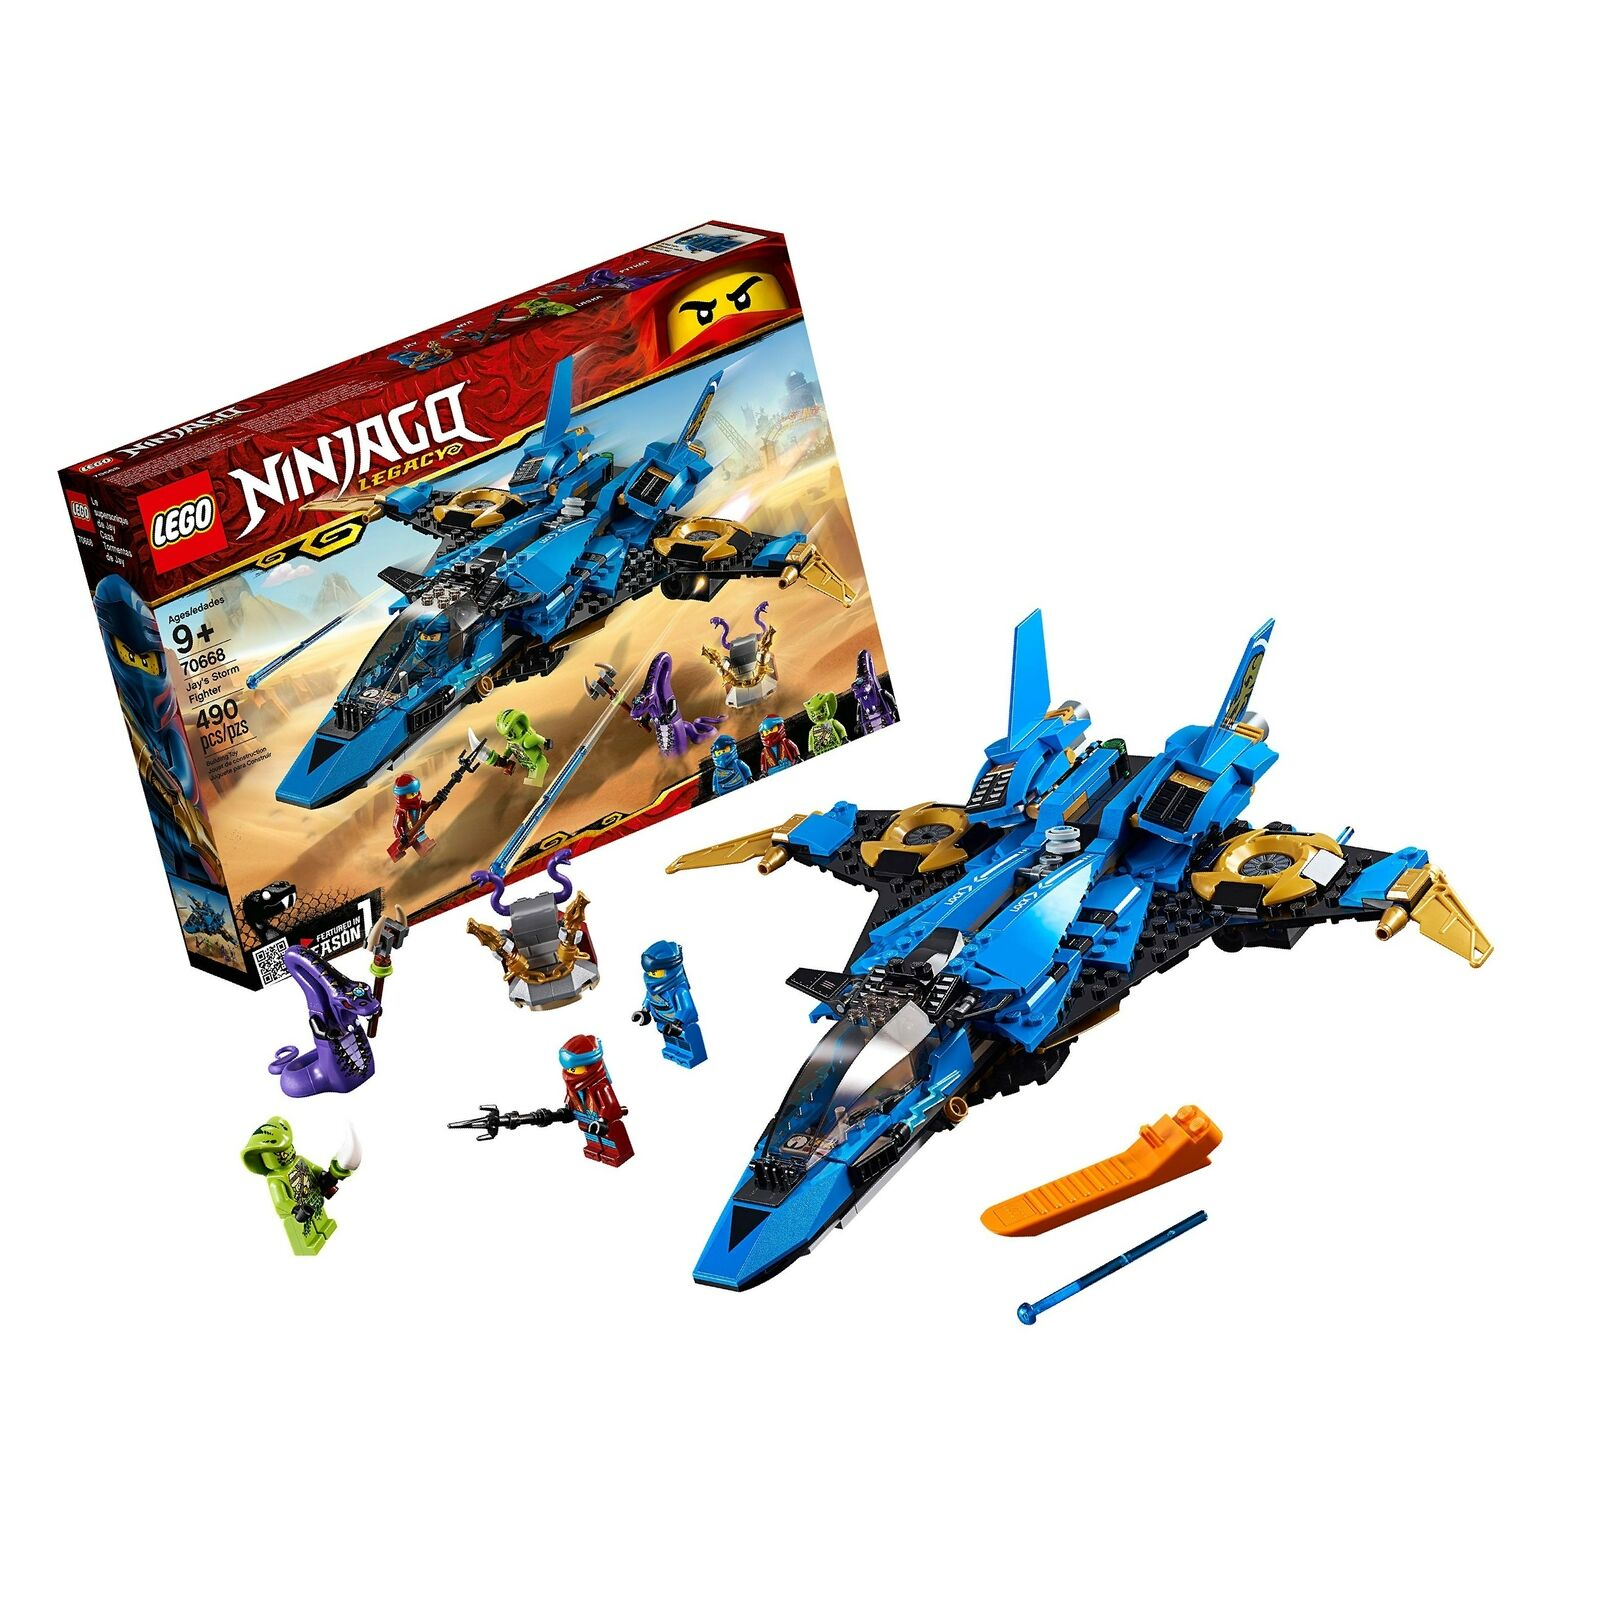 LEGO NINJAGO Legacy Jay's Storm Fighter 70668 Building Kit, New 2019 (490 Pie...